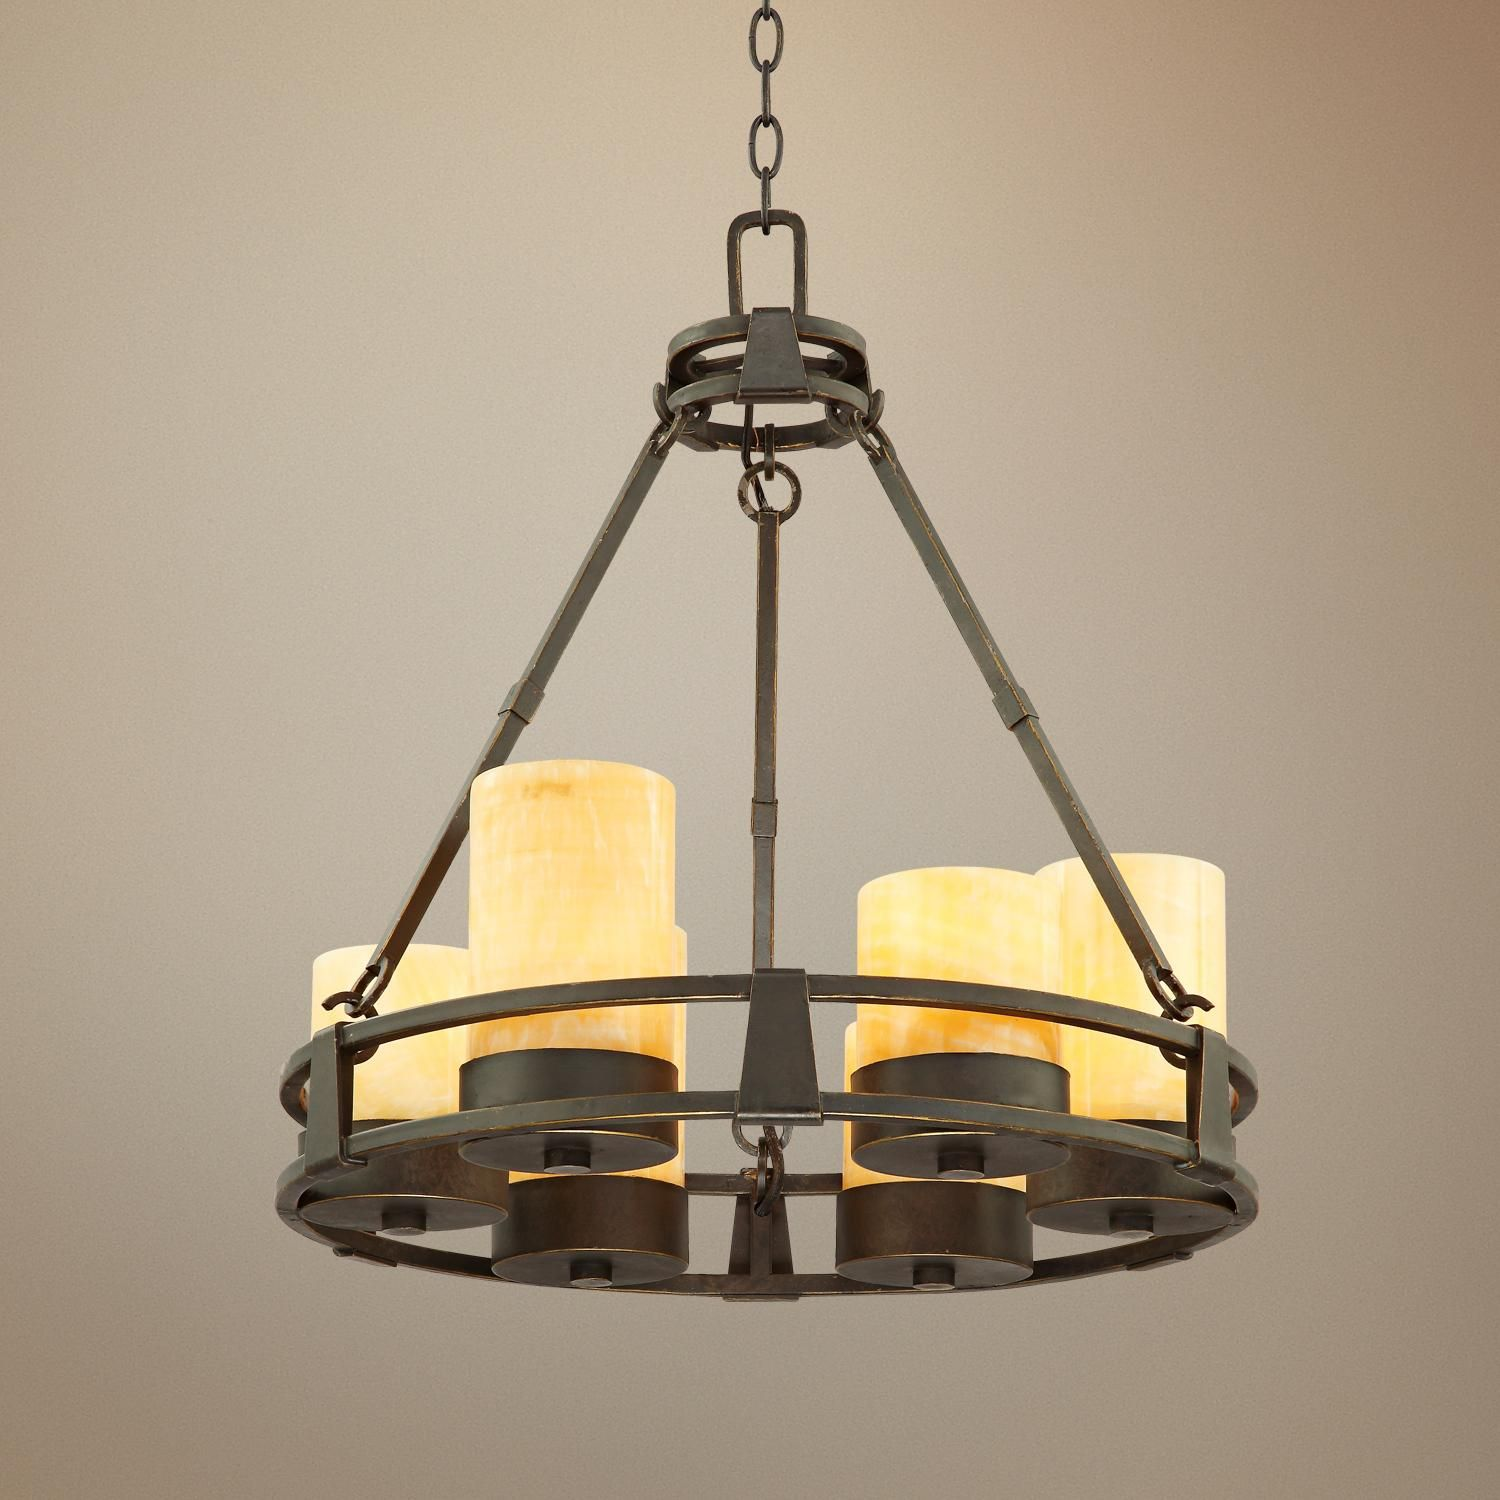 Sunset yx Stone 6 Light Faux Candle Chandelier Style K5863